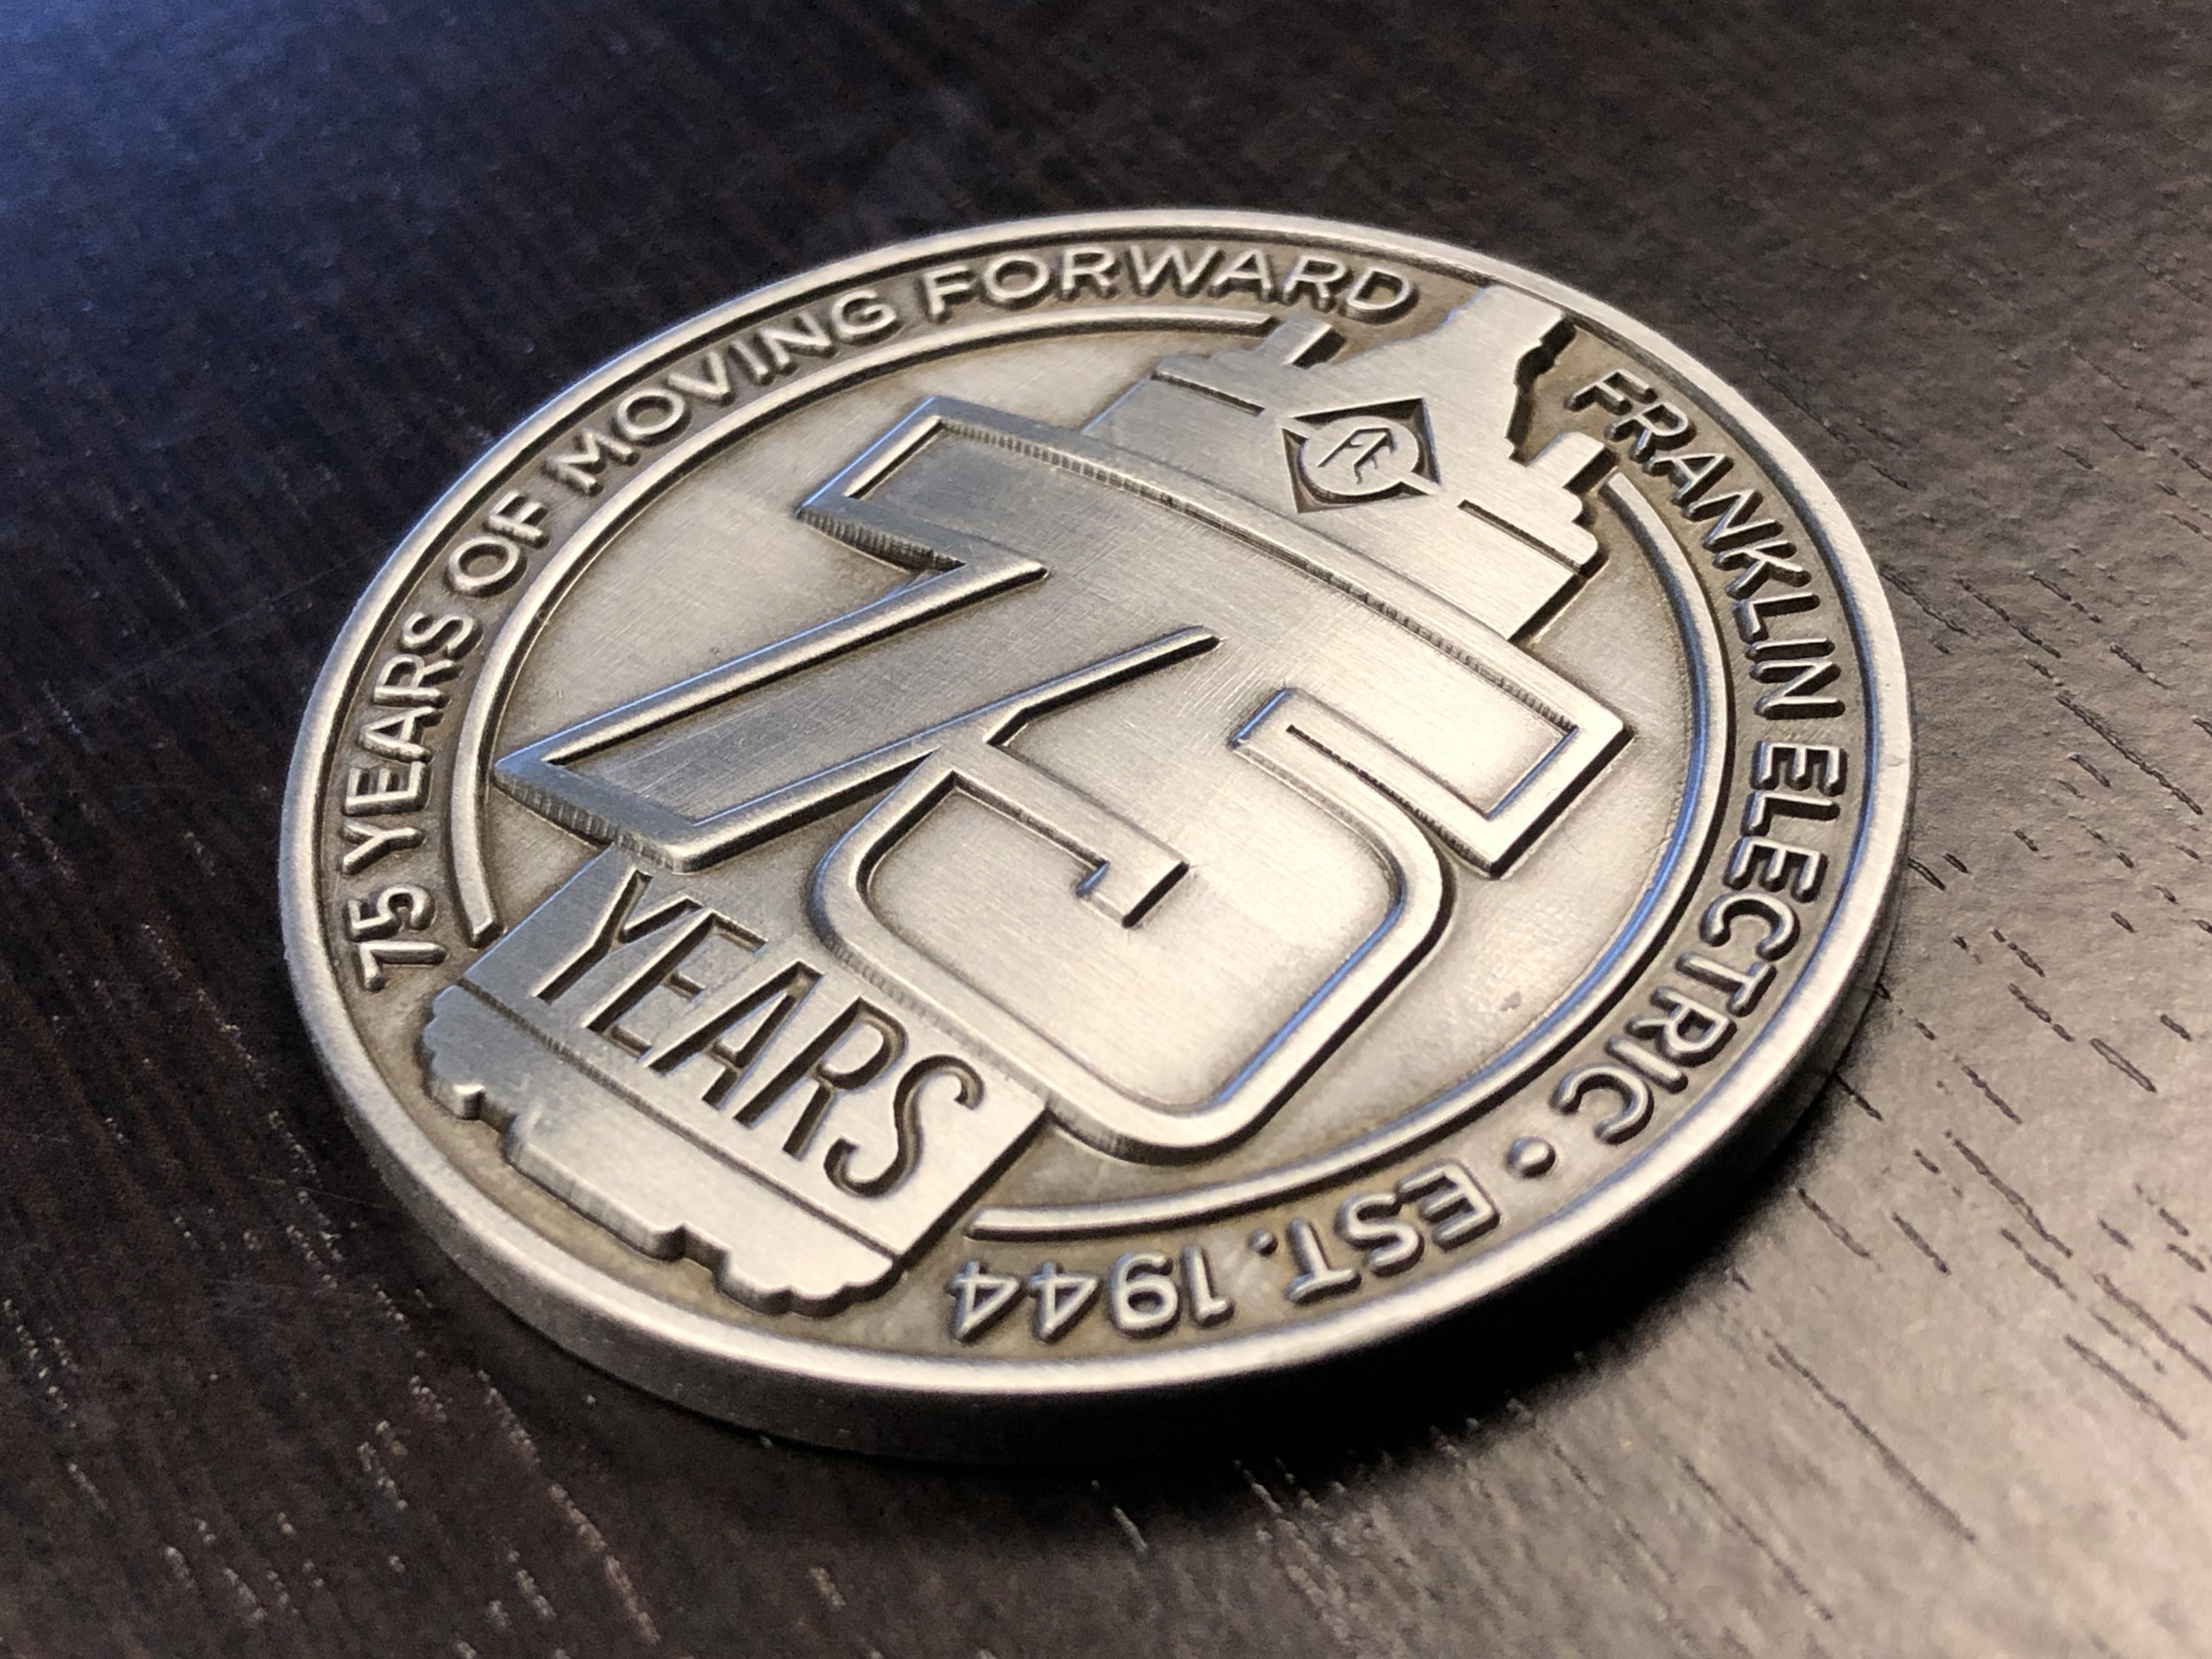 A limited-edition commemorative coin minted by Franklin Electric in celebration of 75 years.